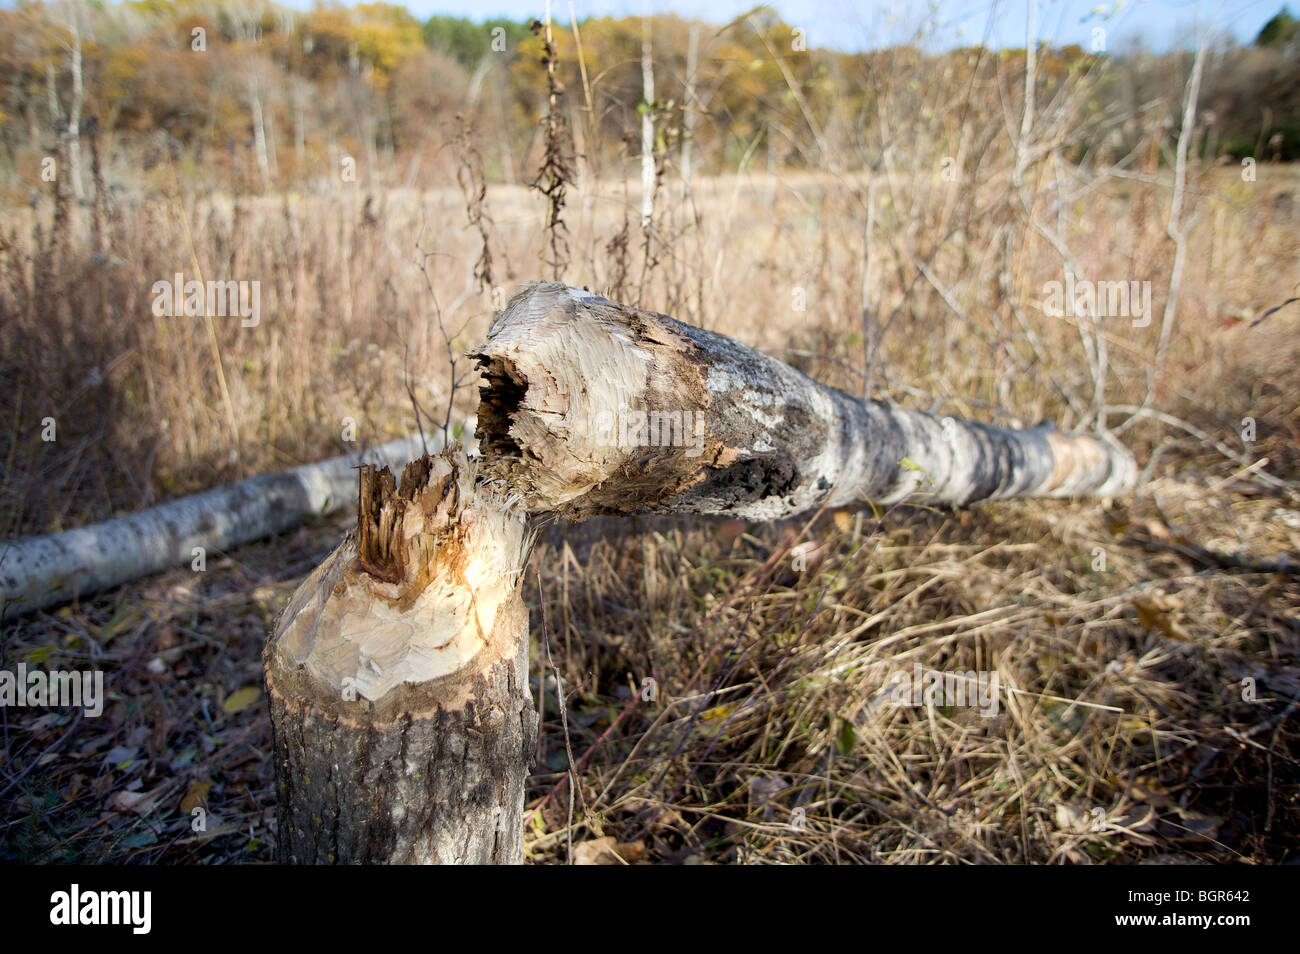 A Poplar Tree felled by a beaver near a small pond in central Wisconsin. - Stock Image